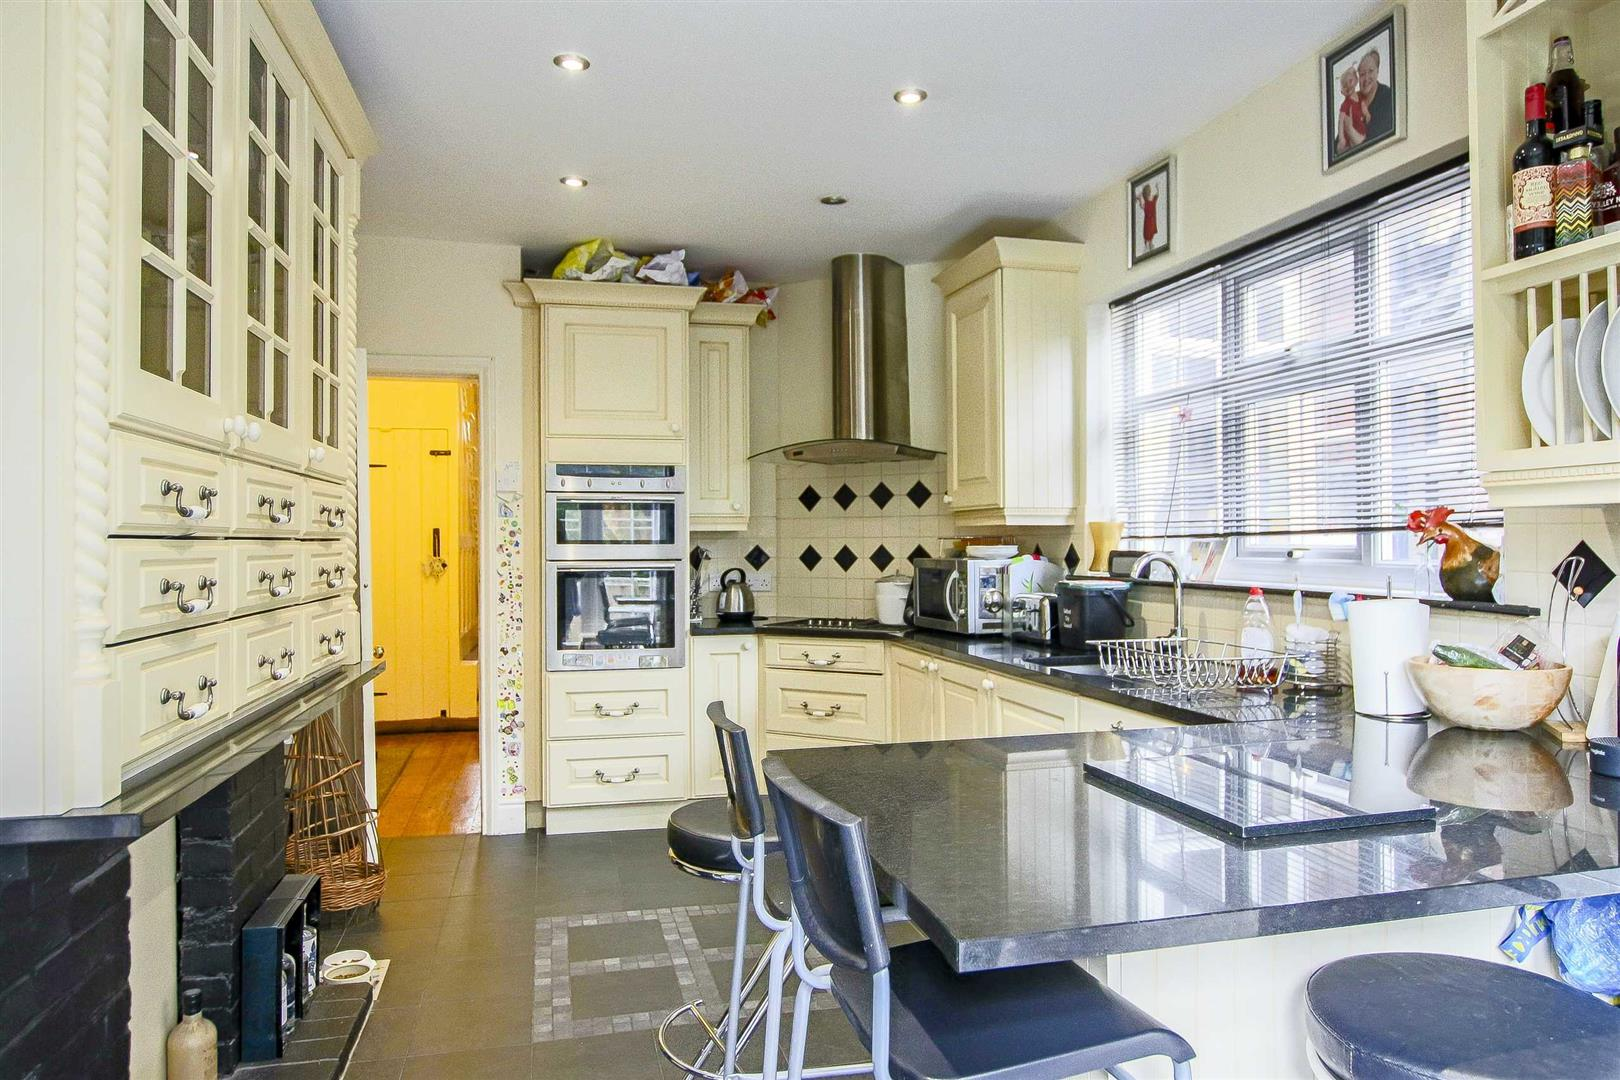 5 Bedroom Terraced House For Sale - Image 22